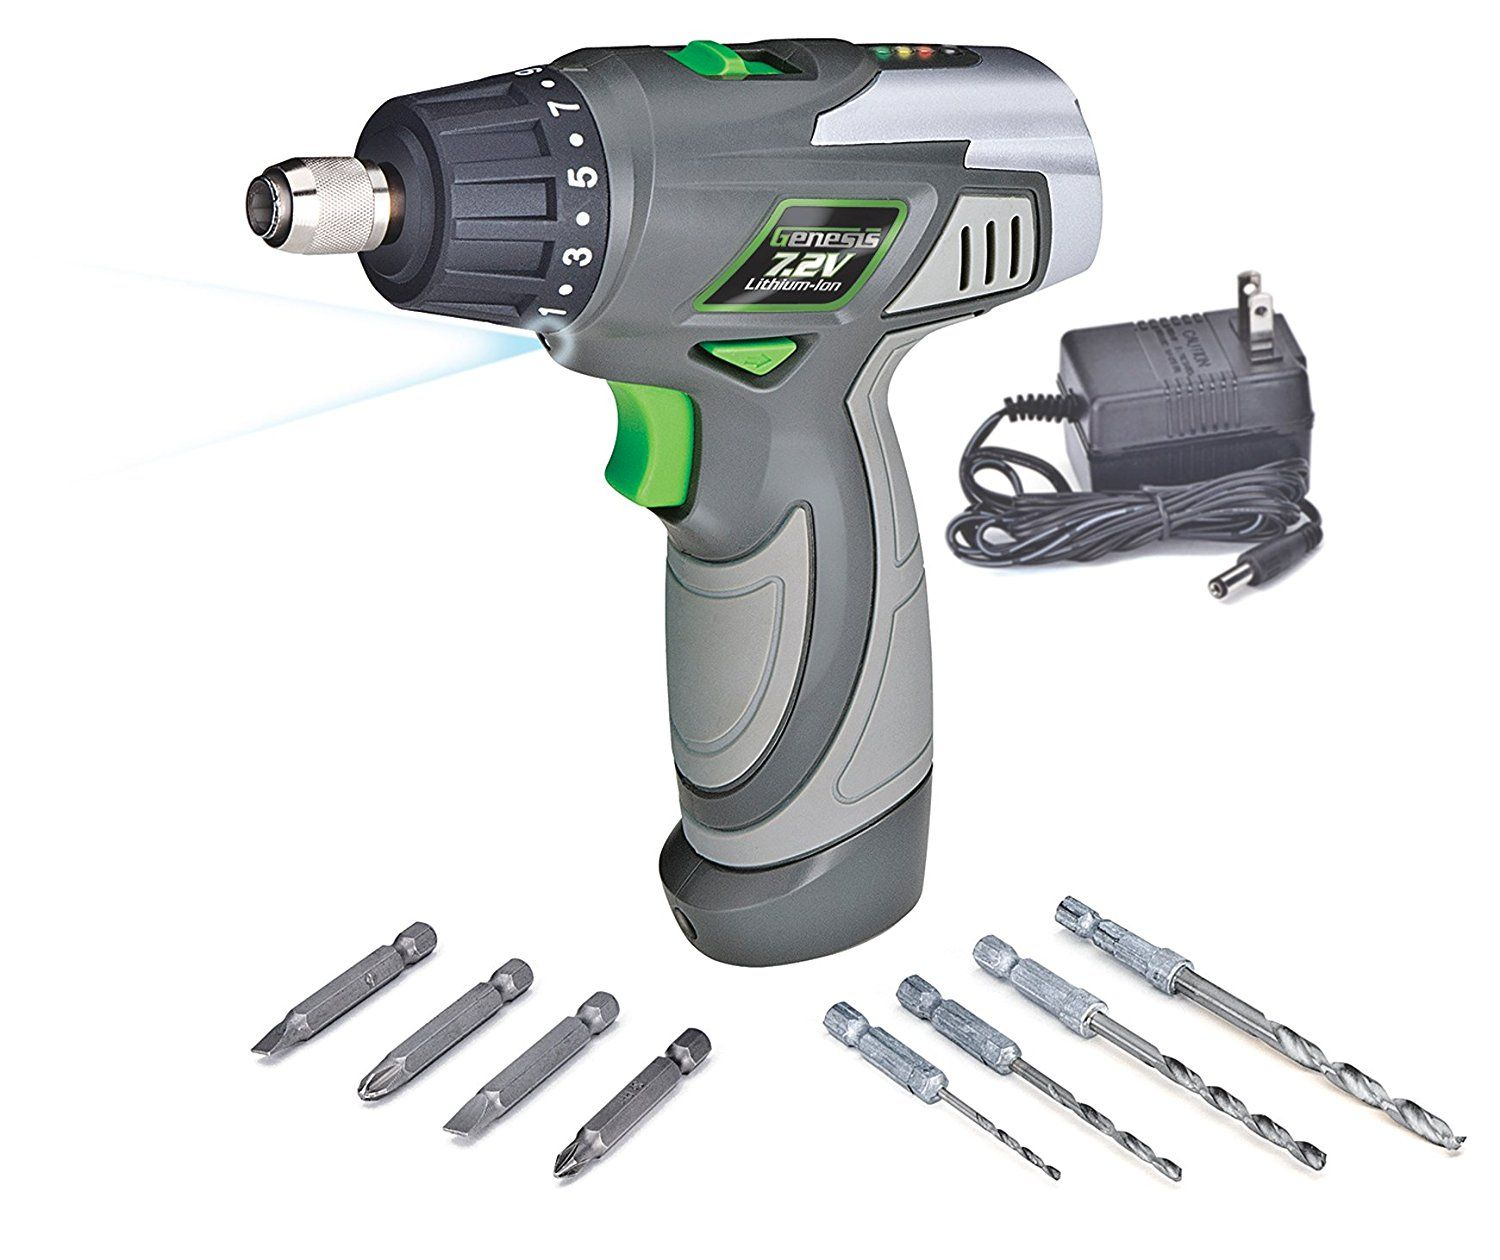 Best Cordless Screwdriver For Electricians Or For Homeuse Cordless Screwdrivers Electric Screwdriver Cordless Drill Reviews